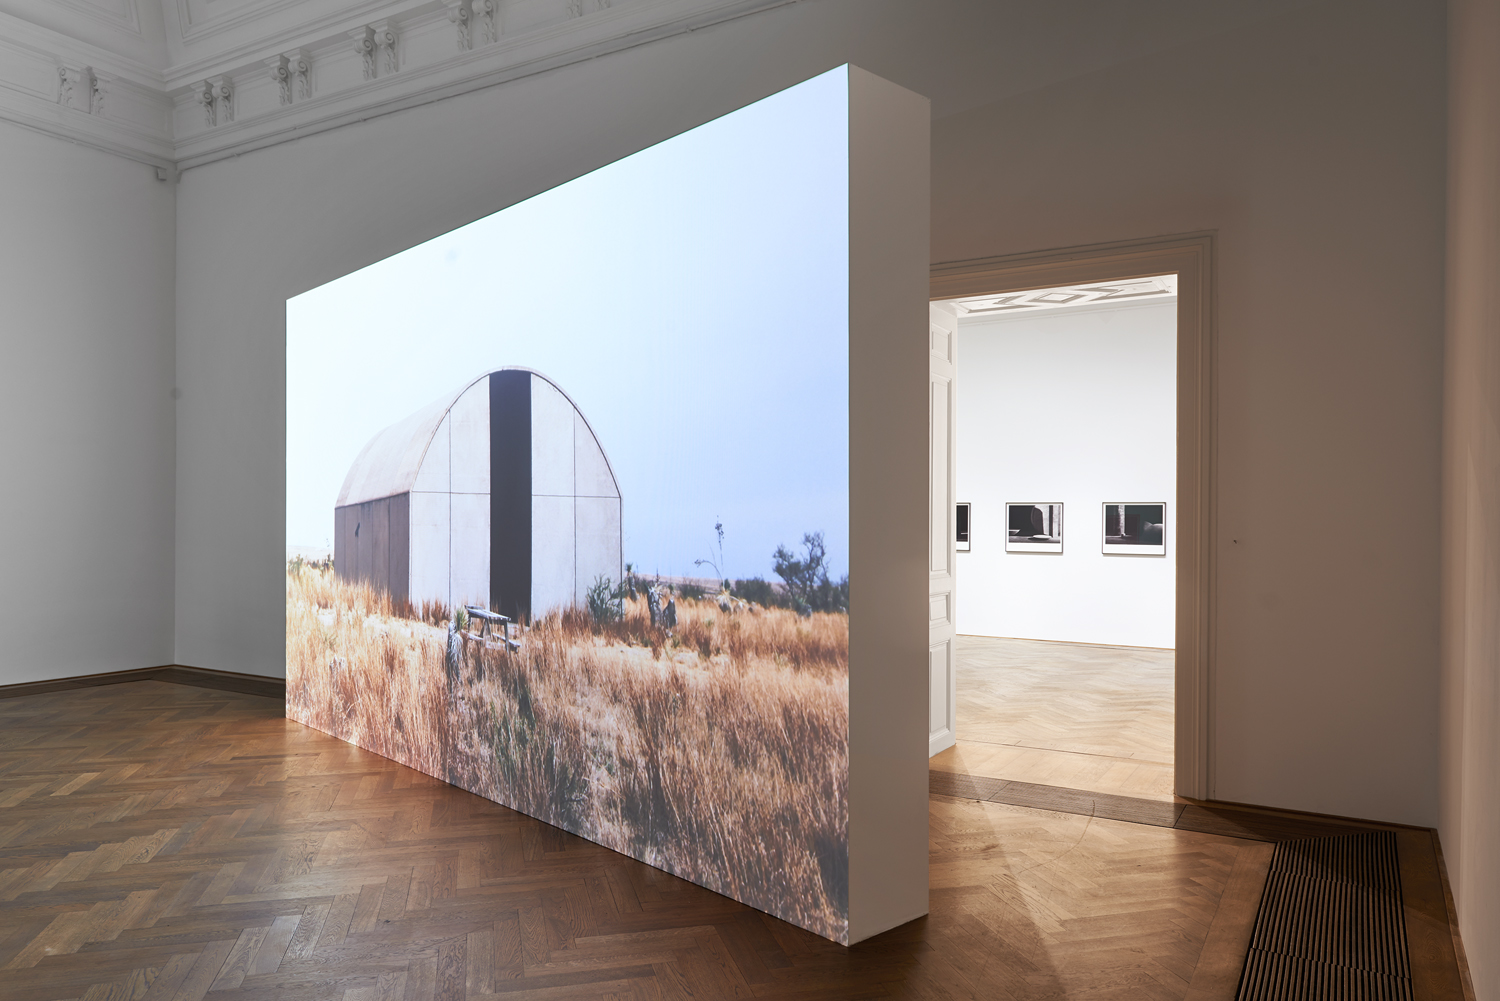 Concrete Buildings, 2013-16, color video, two channels, mute, 73 minutes; 46 minutes (loop) - installation view